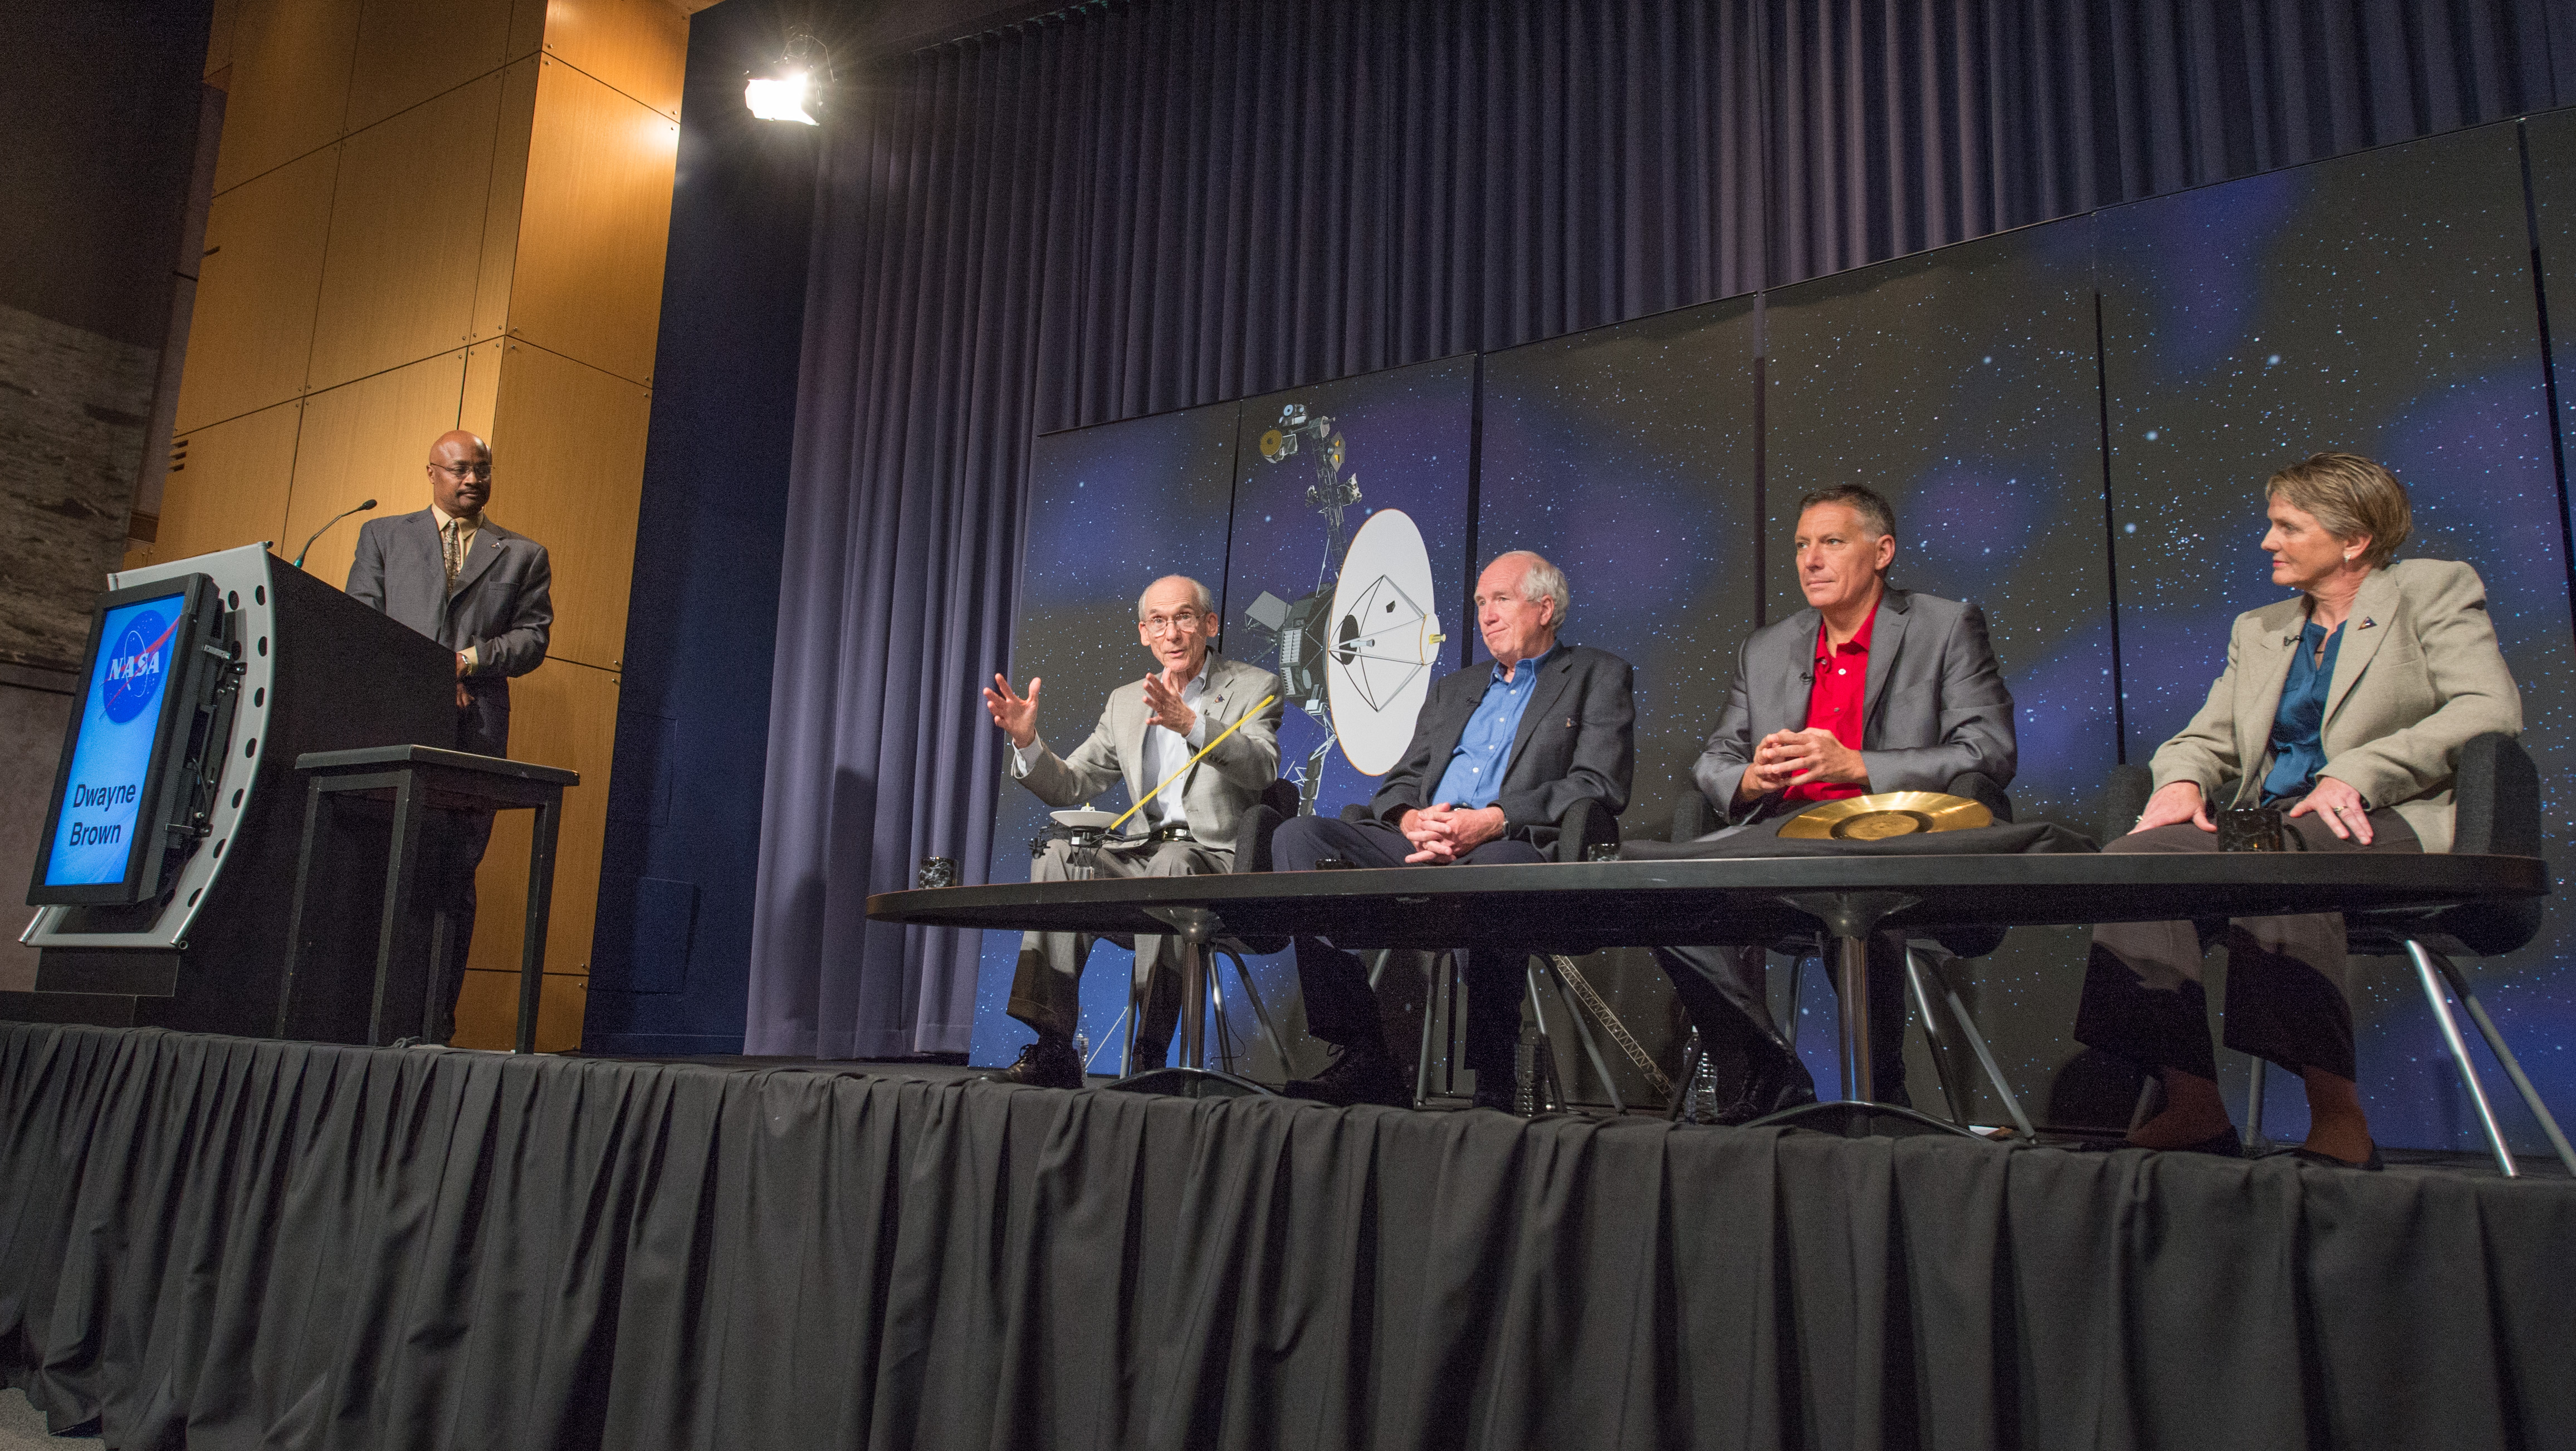 Sept. 12, 2013: Voyager Project Scientist Speaks at Press Conference